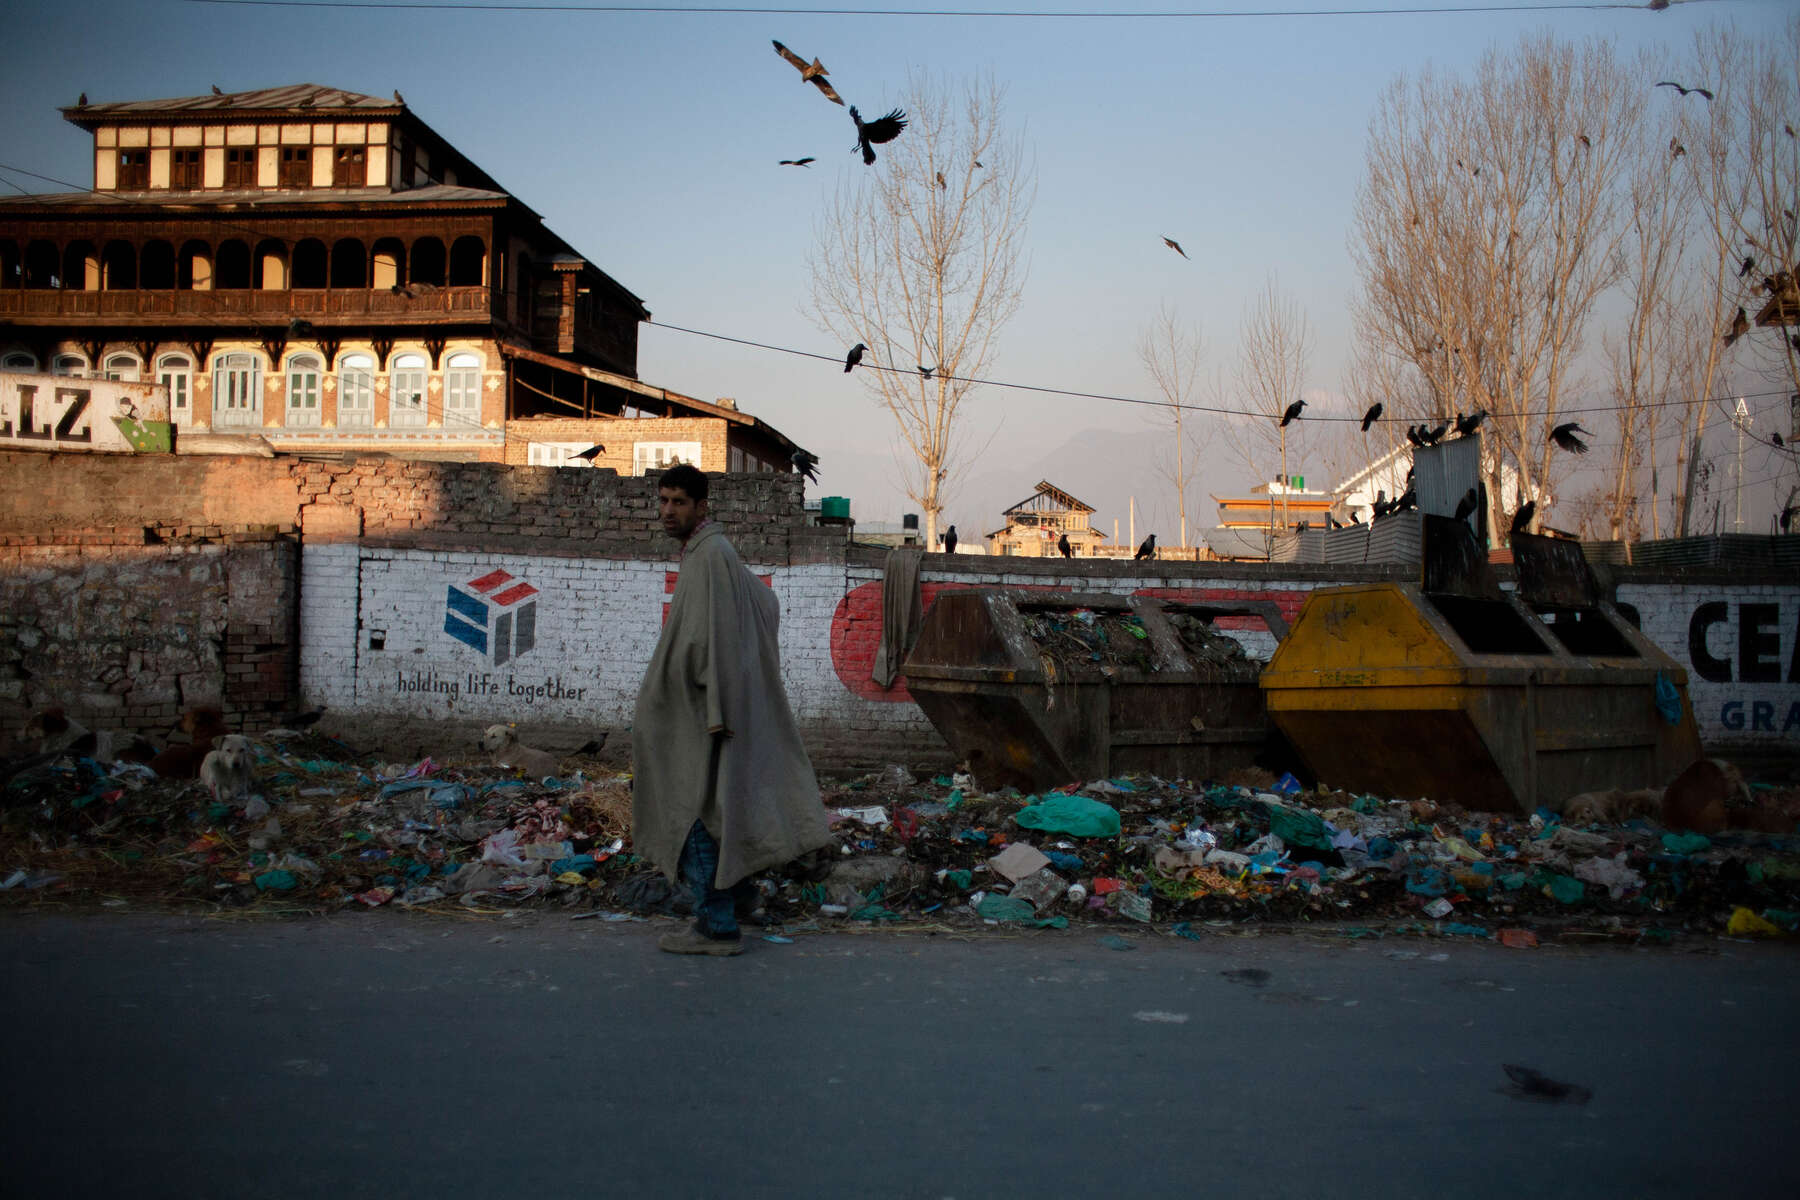 Snow melts over earth and waste. Bins stand beside piles of materials, expired, and without purpose; the decaying of Srinagar's 'shehr-e-Khaas'.